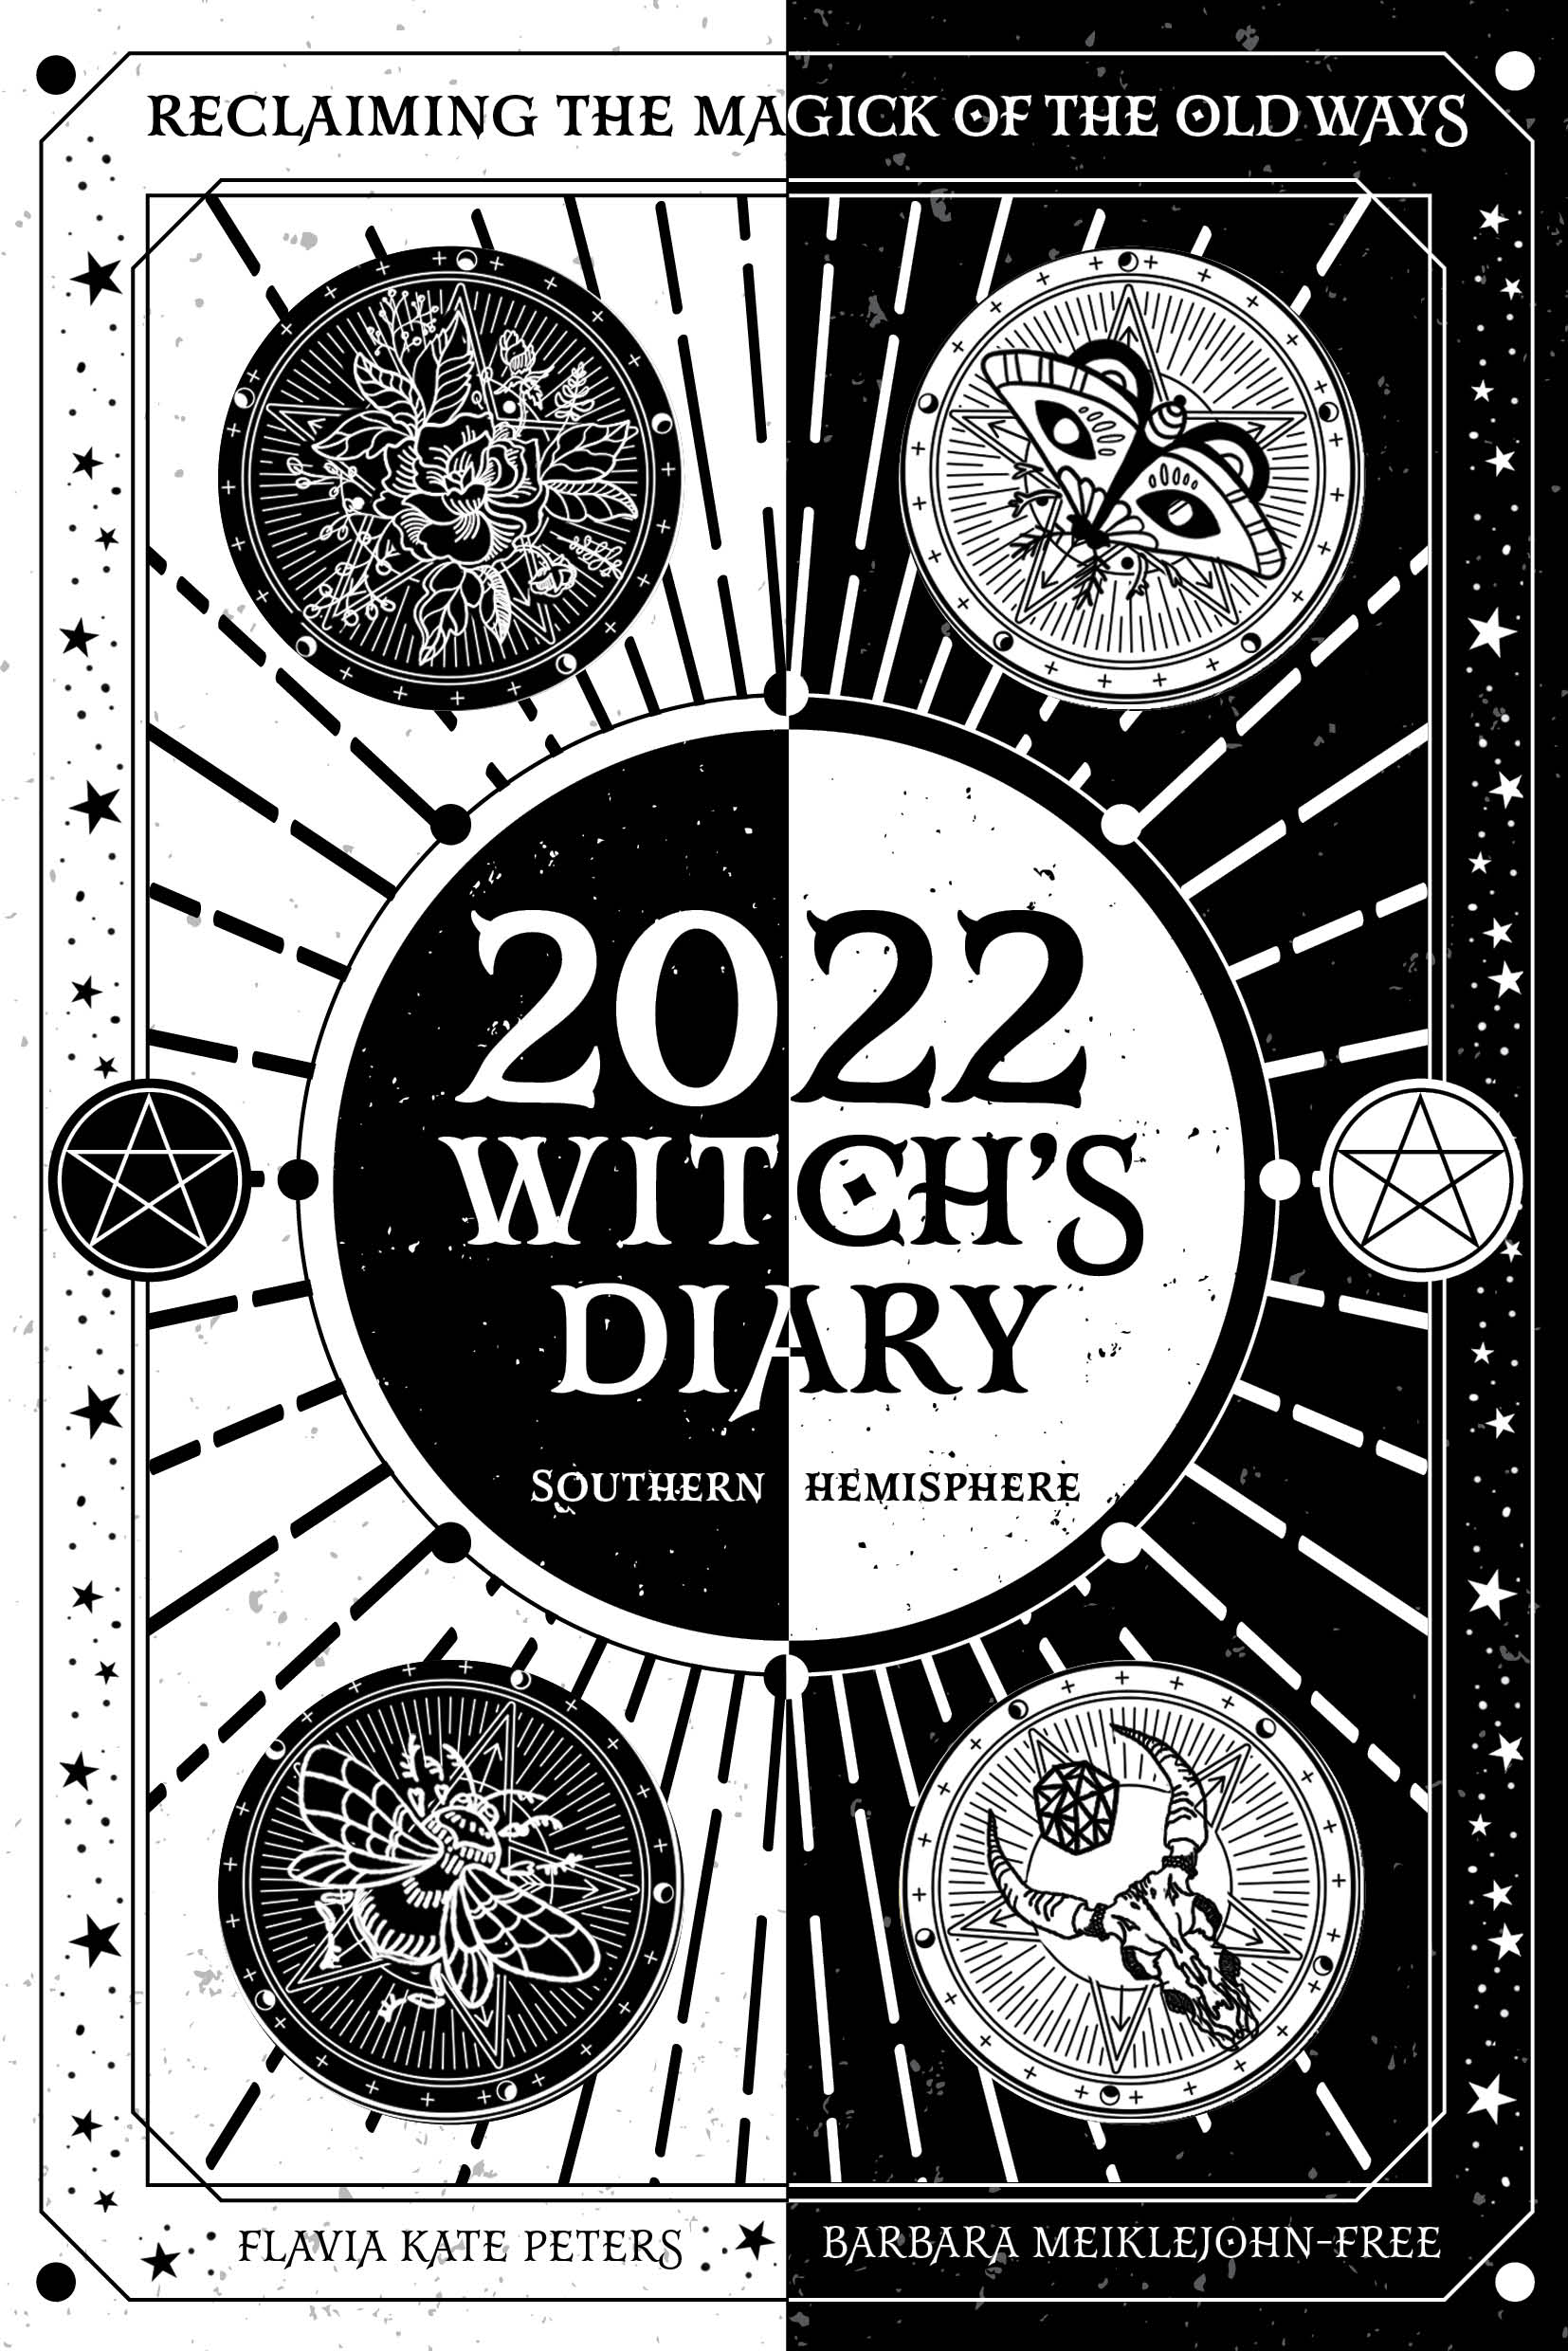 2022 Witch's Dairy - Southern Hemisphere